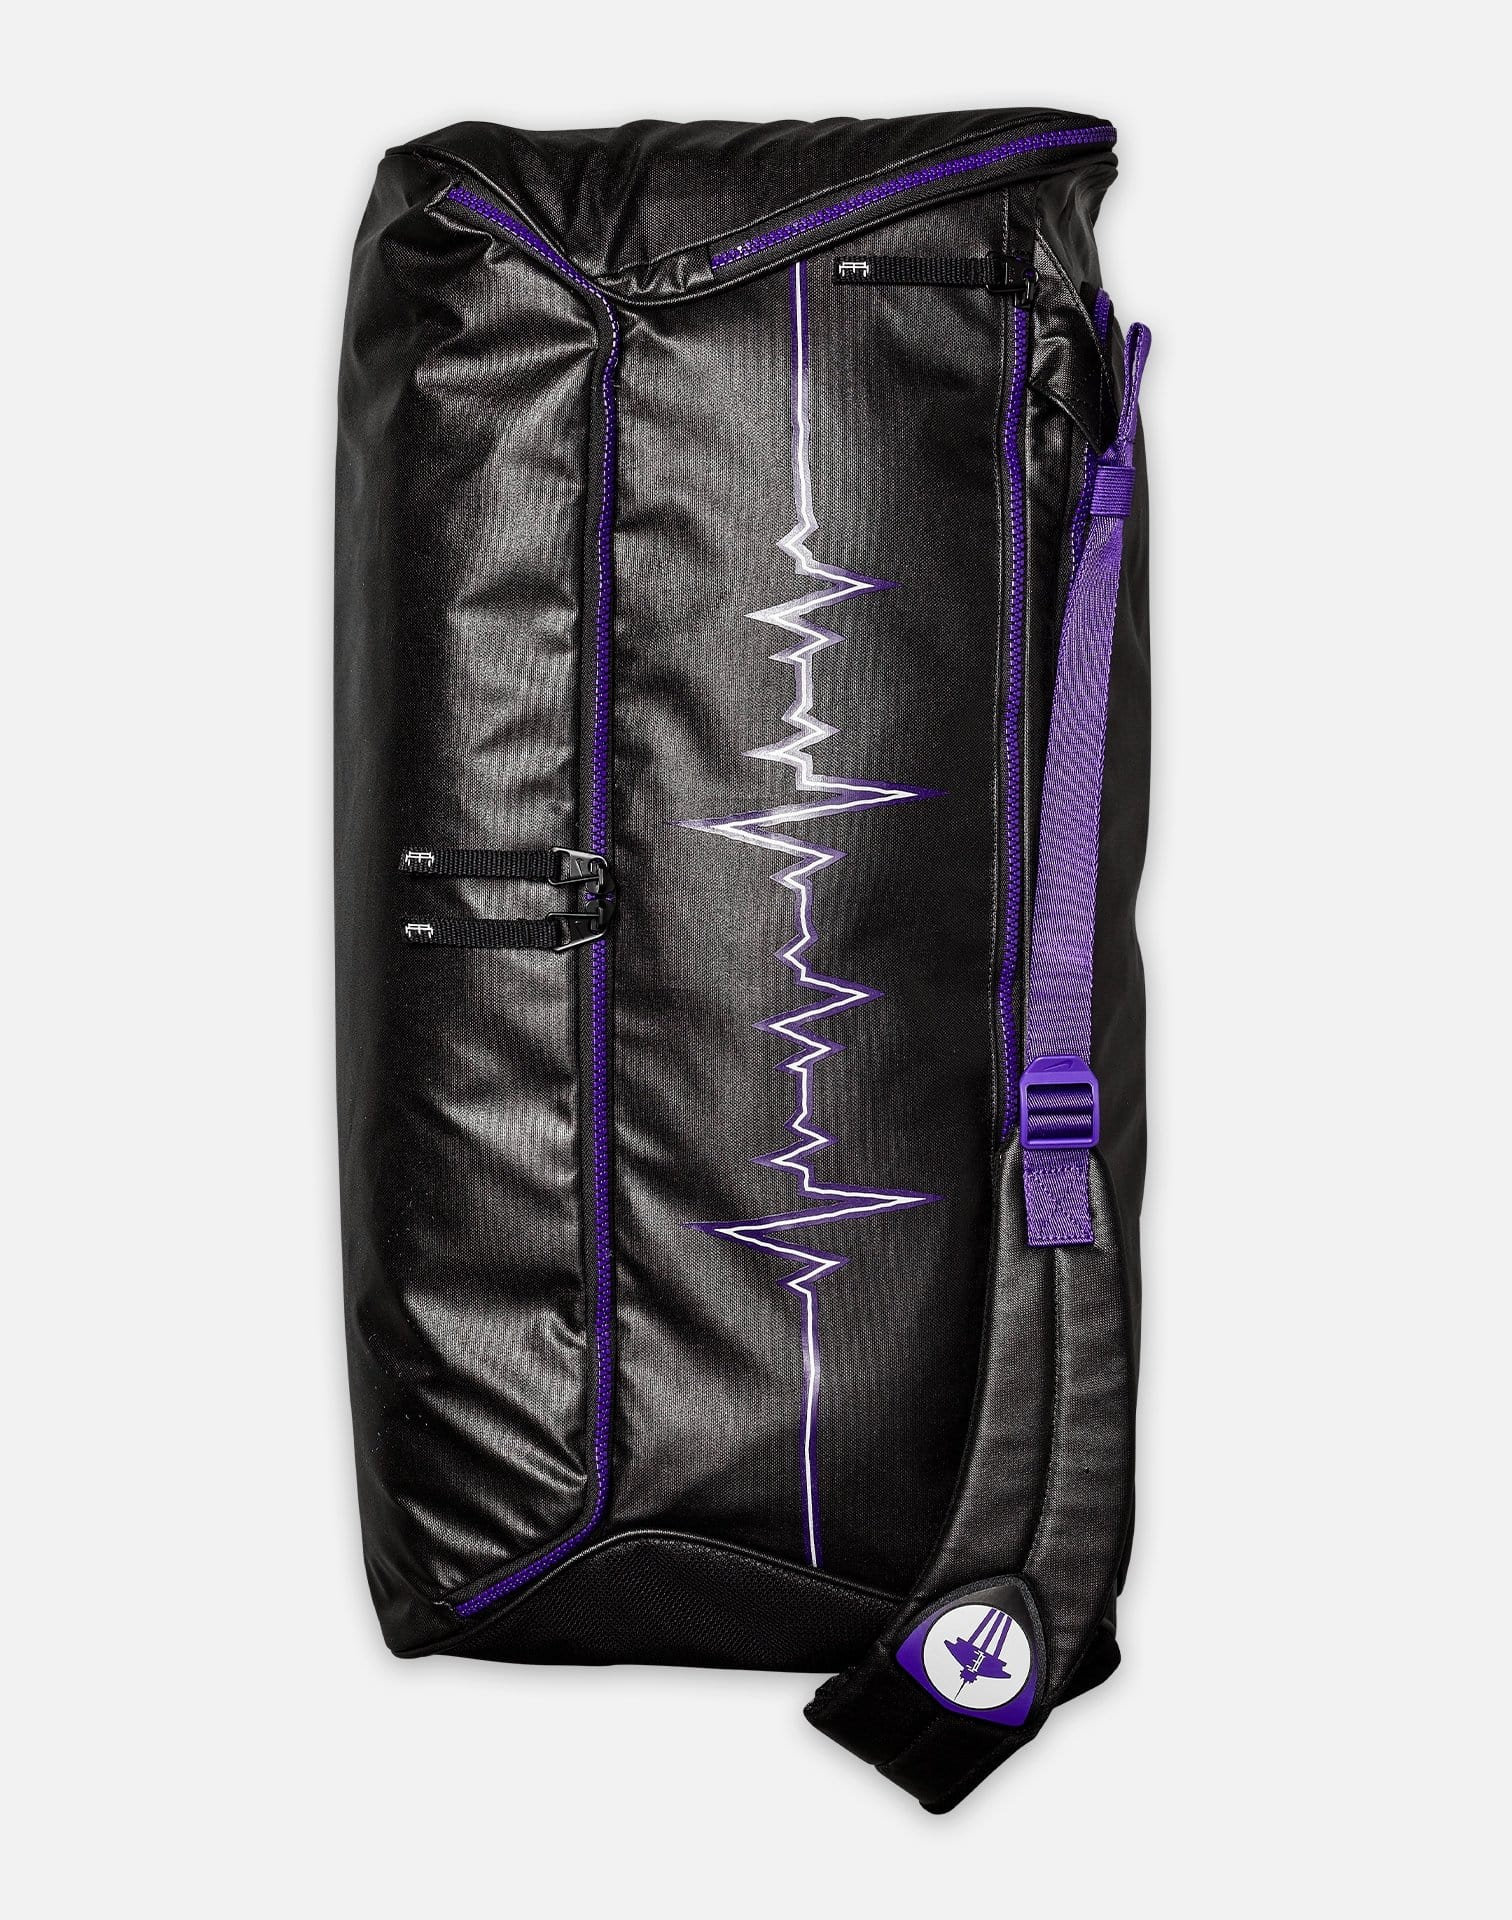 Nike ETHAN BRASILIA DOERNBECHER TRAINING DUFFEL BAG